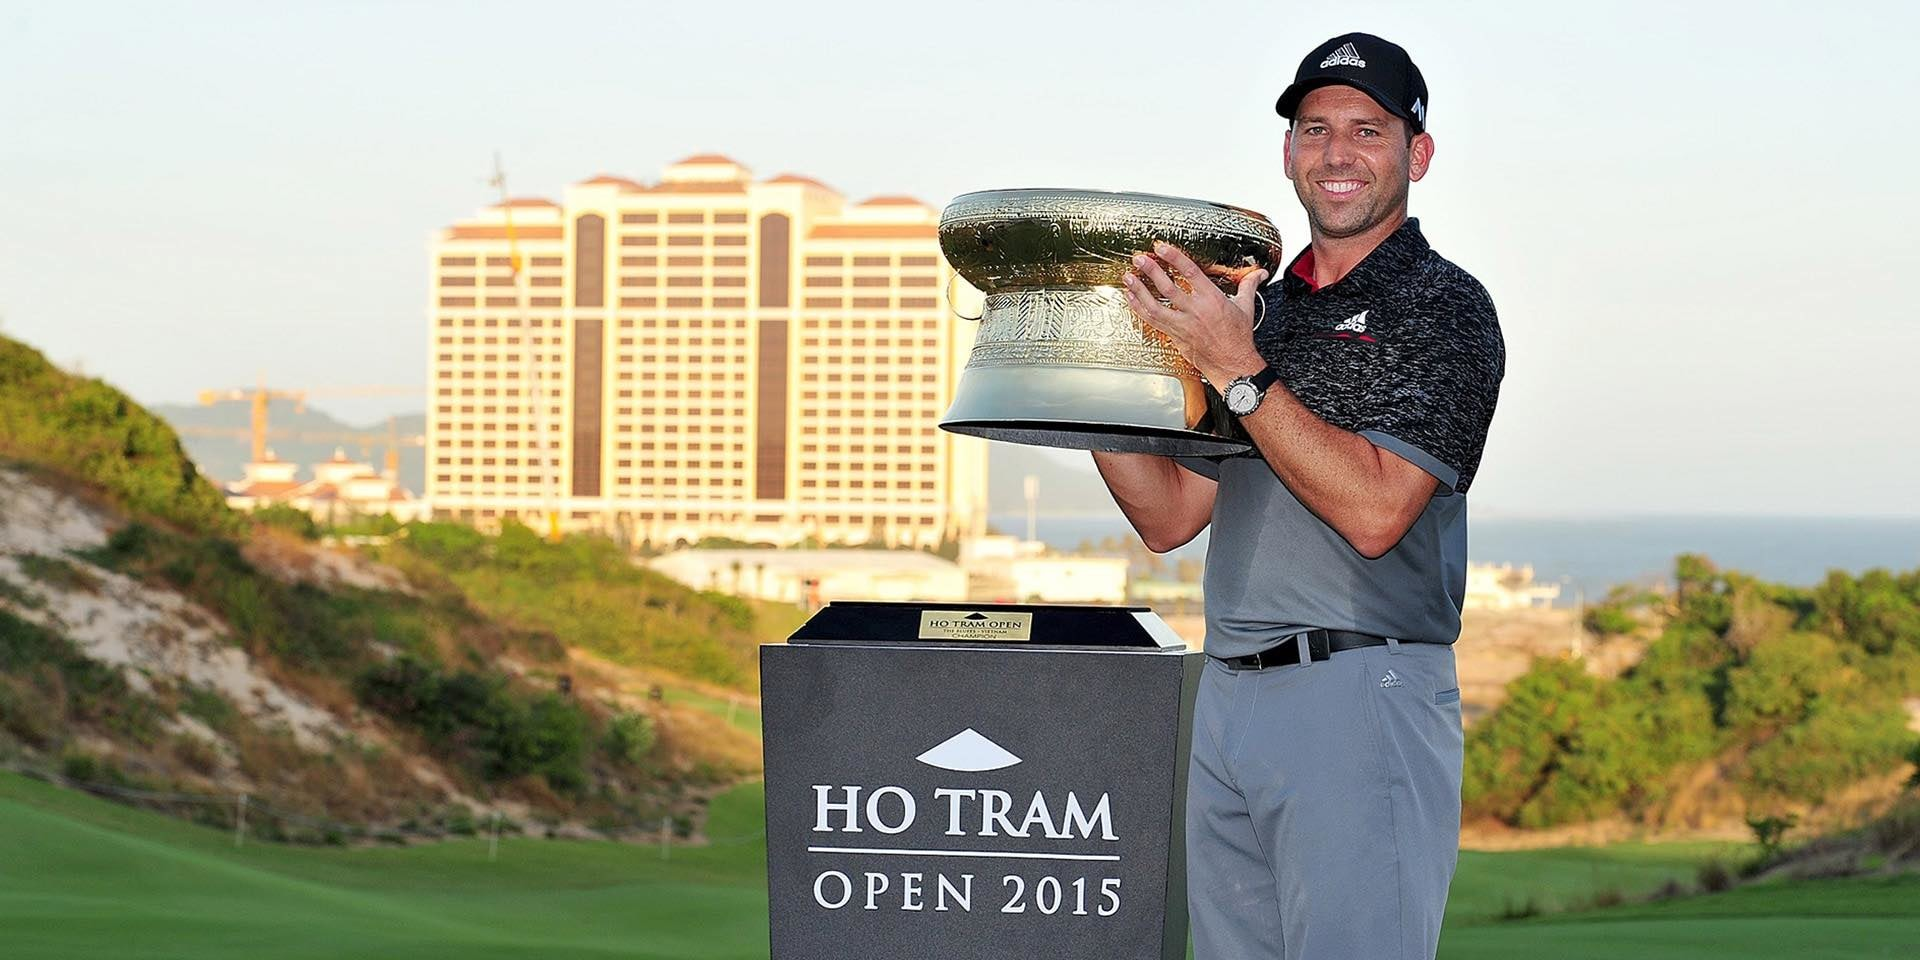 Ho Tram Open Champion Sergio Garcia posing with his trophy at The Bluffs Ho Tram Strip